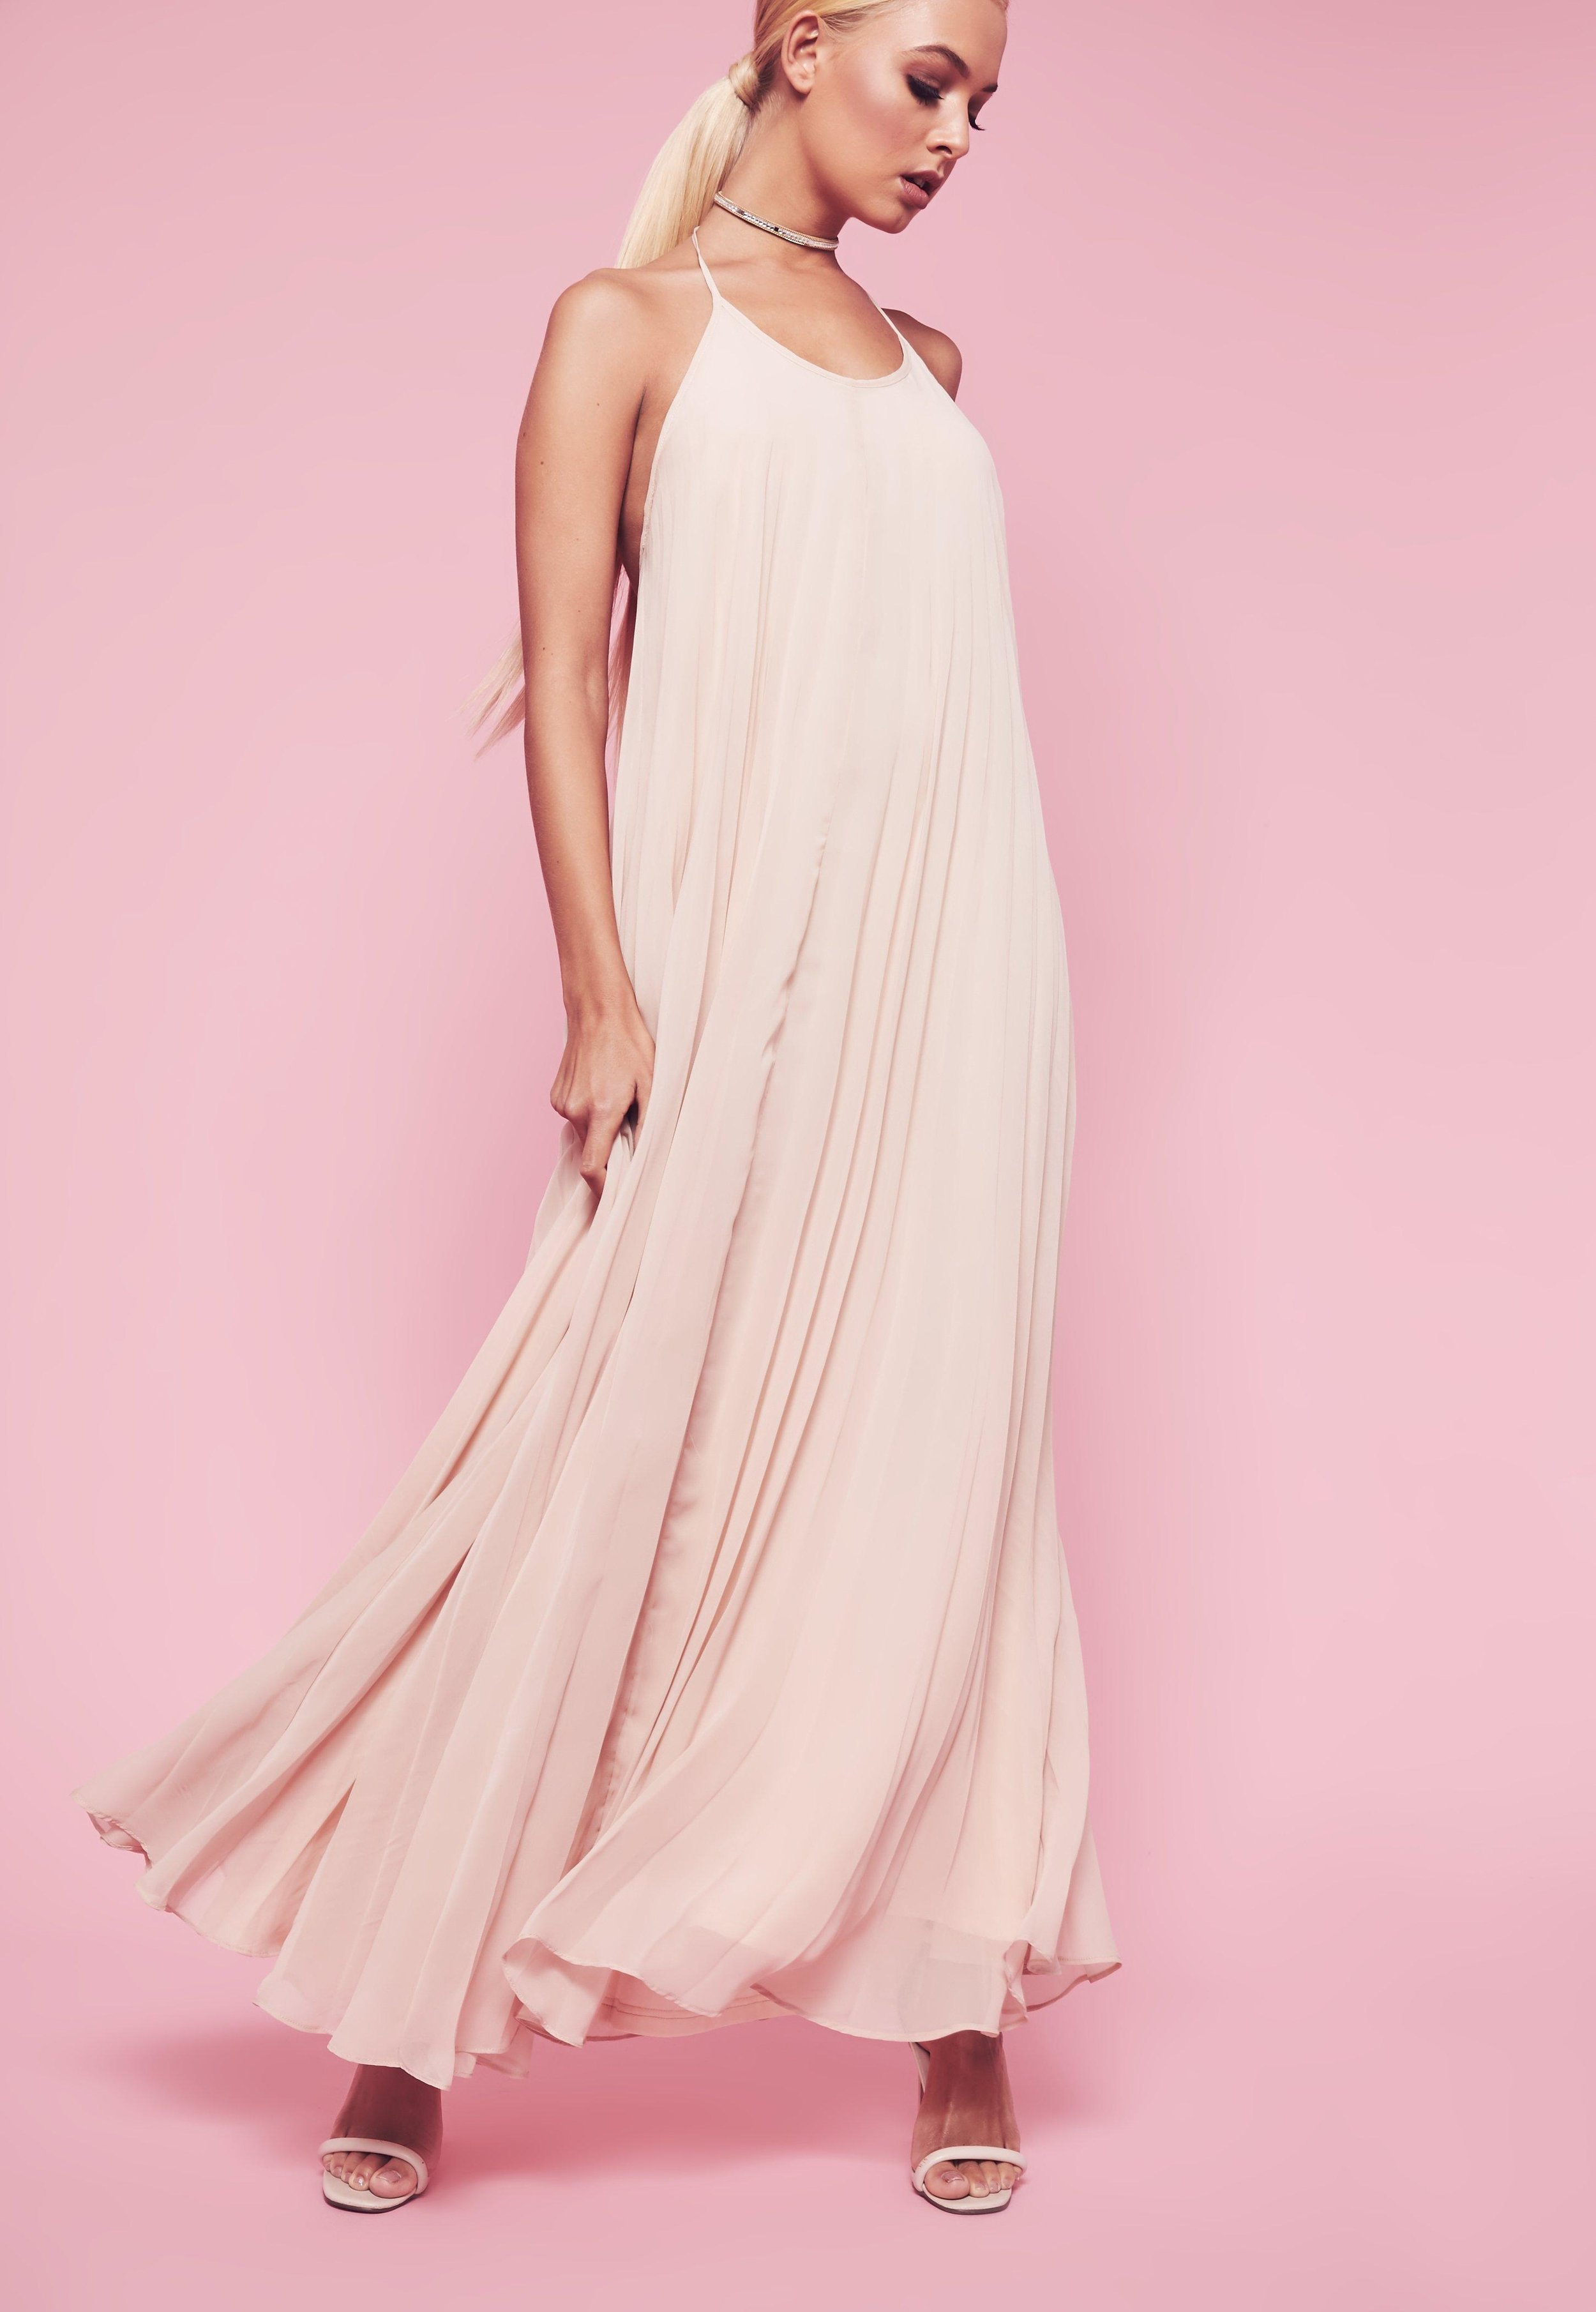 how-to-style-pink-light-dress-maxi-choker-necklace-blonde-pony-spring-summer-fashion-dinner.jpg